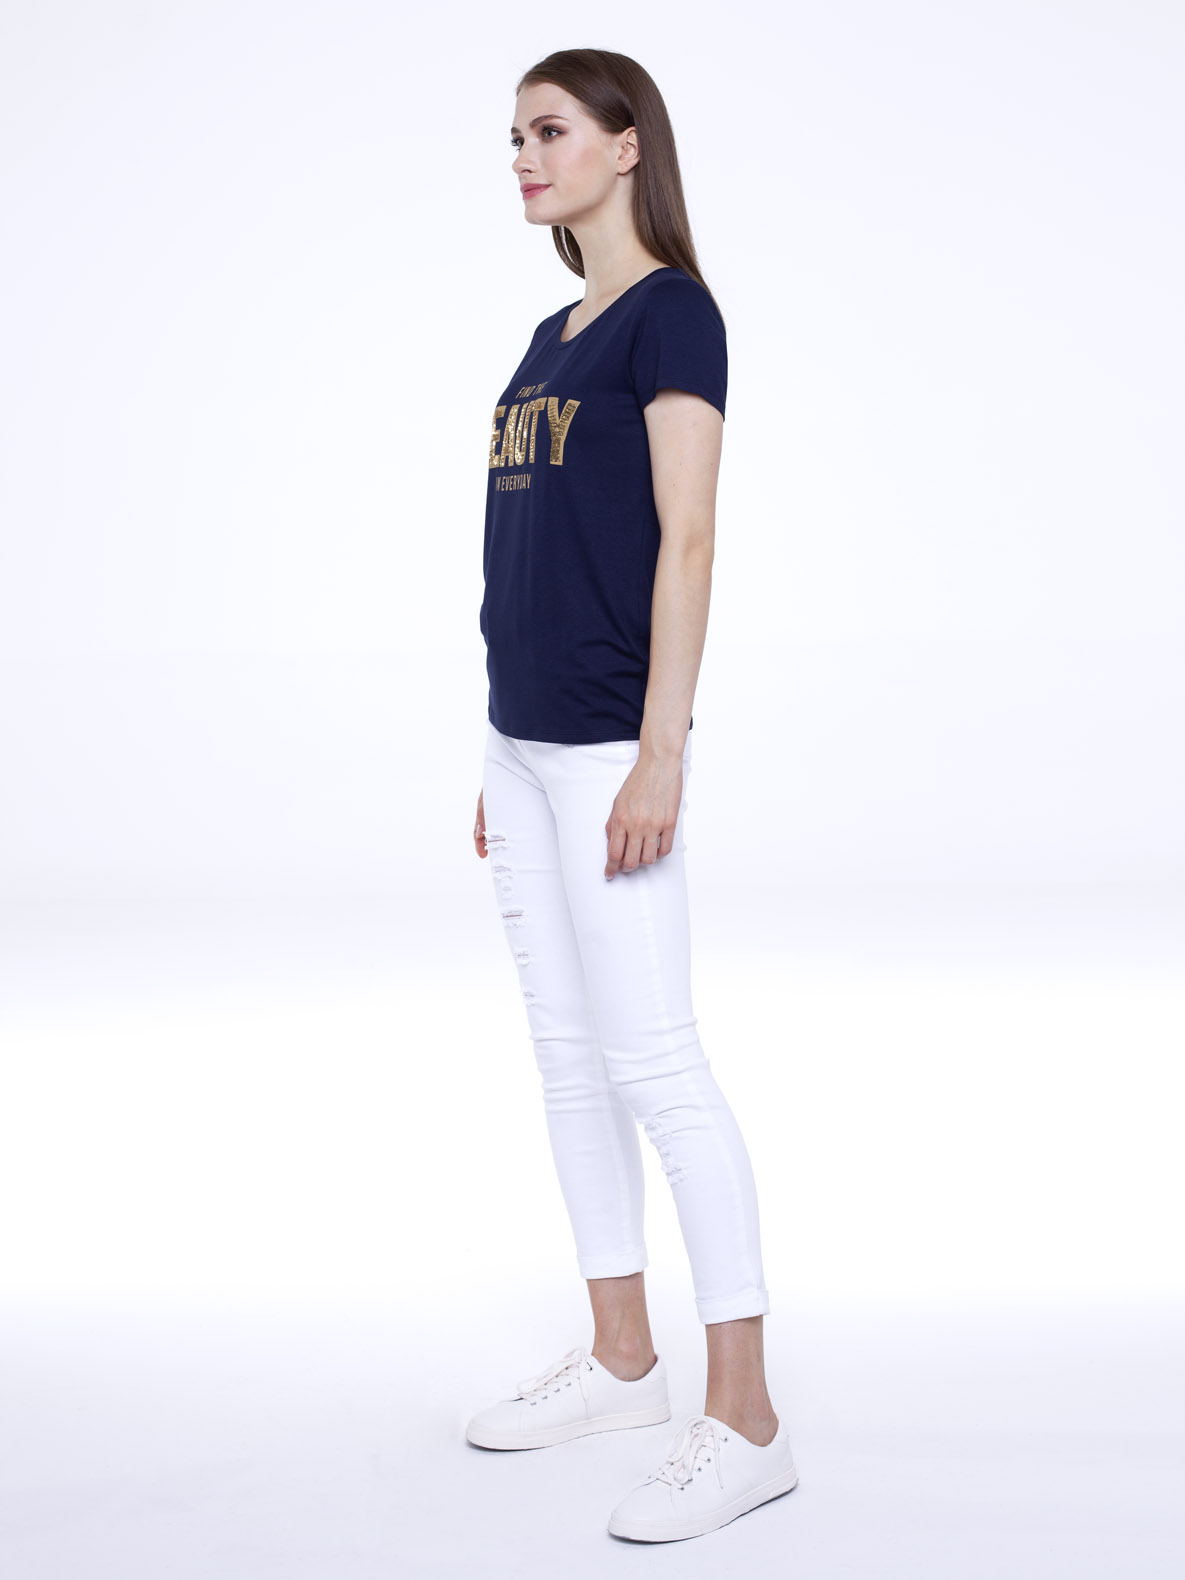 T-shirt She navy blue